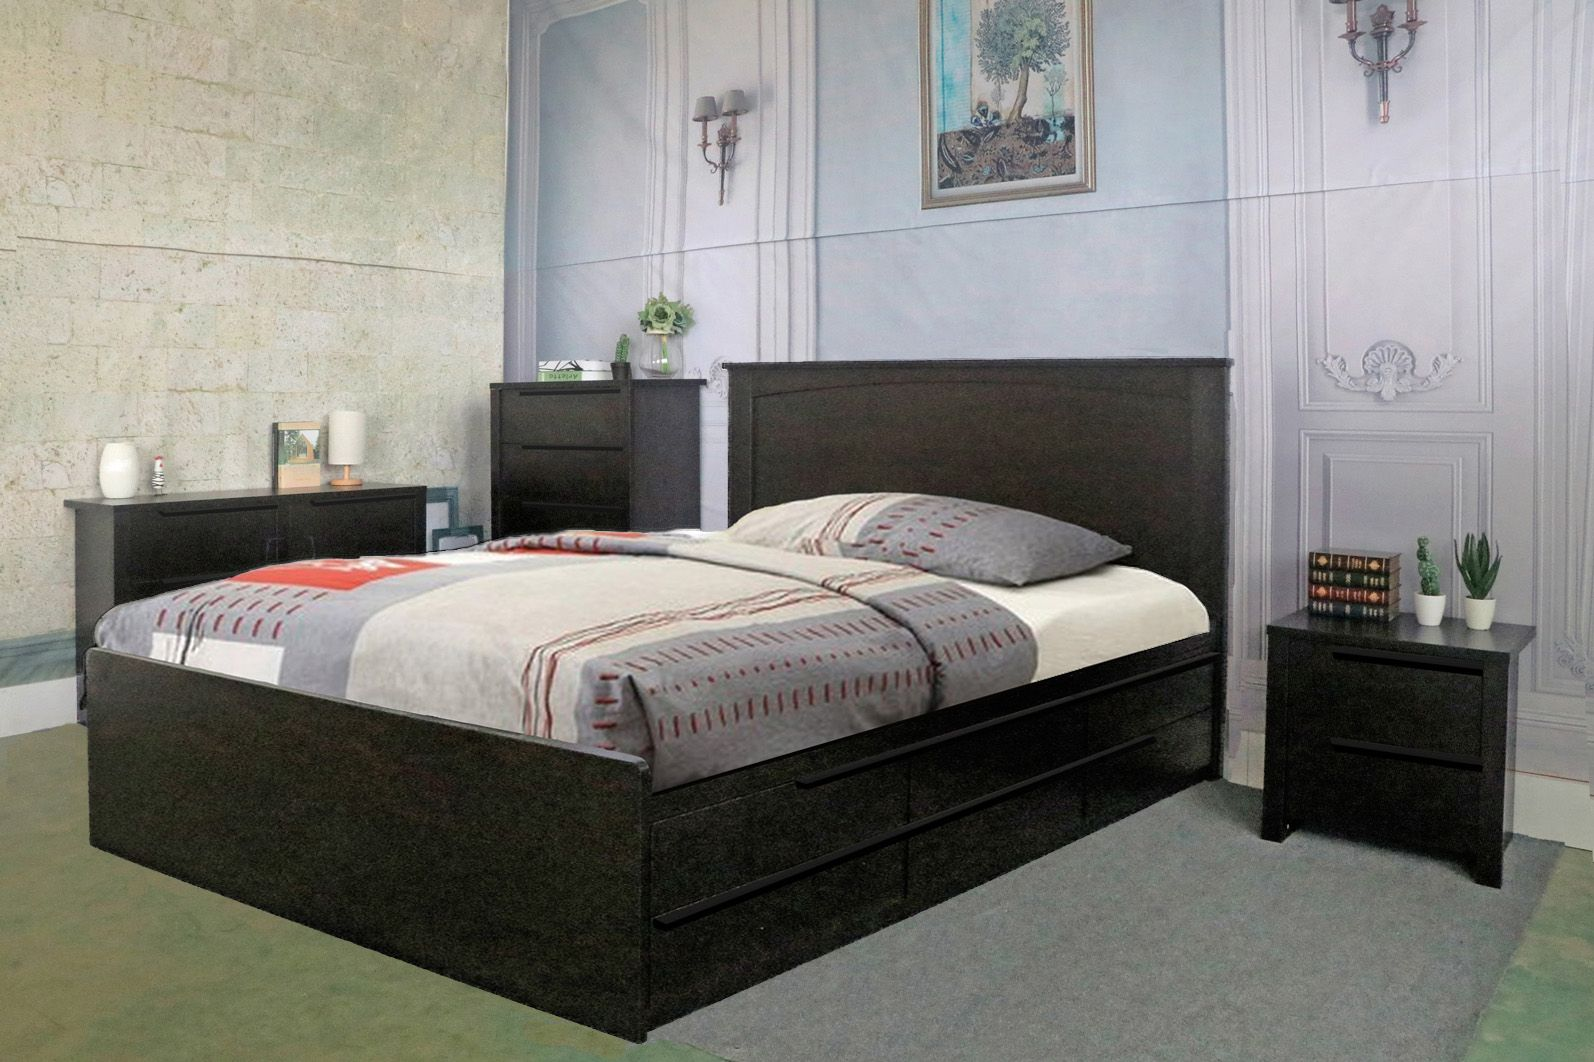 Y1702FX5 Smart Home Red Cocoa Full Size Bedroom 5 Piece